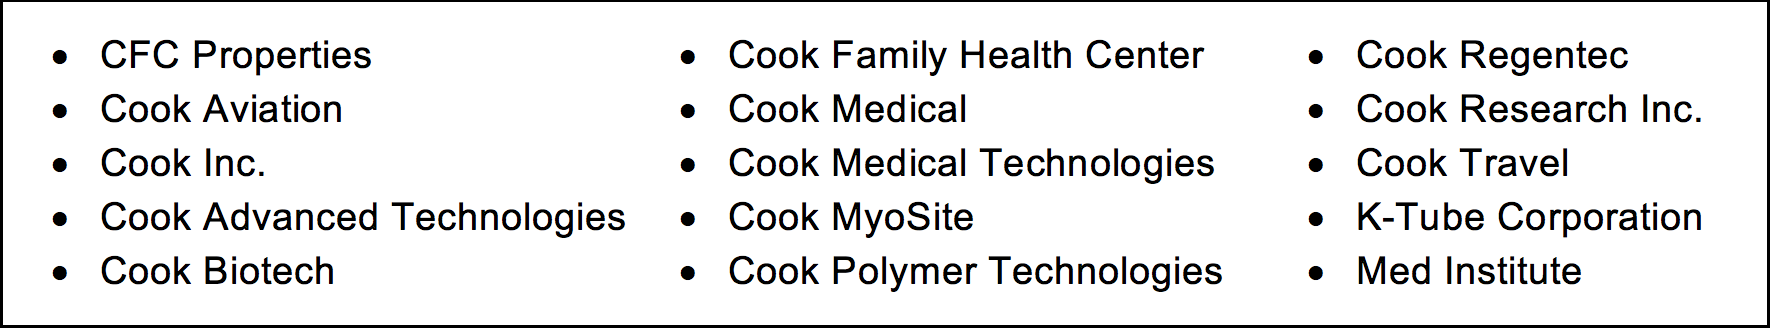 Cook Group companies bullet list